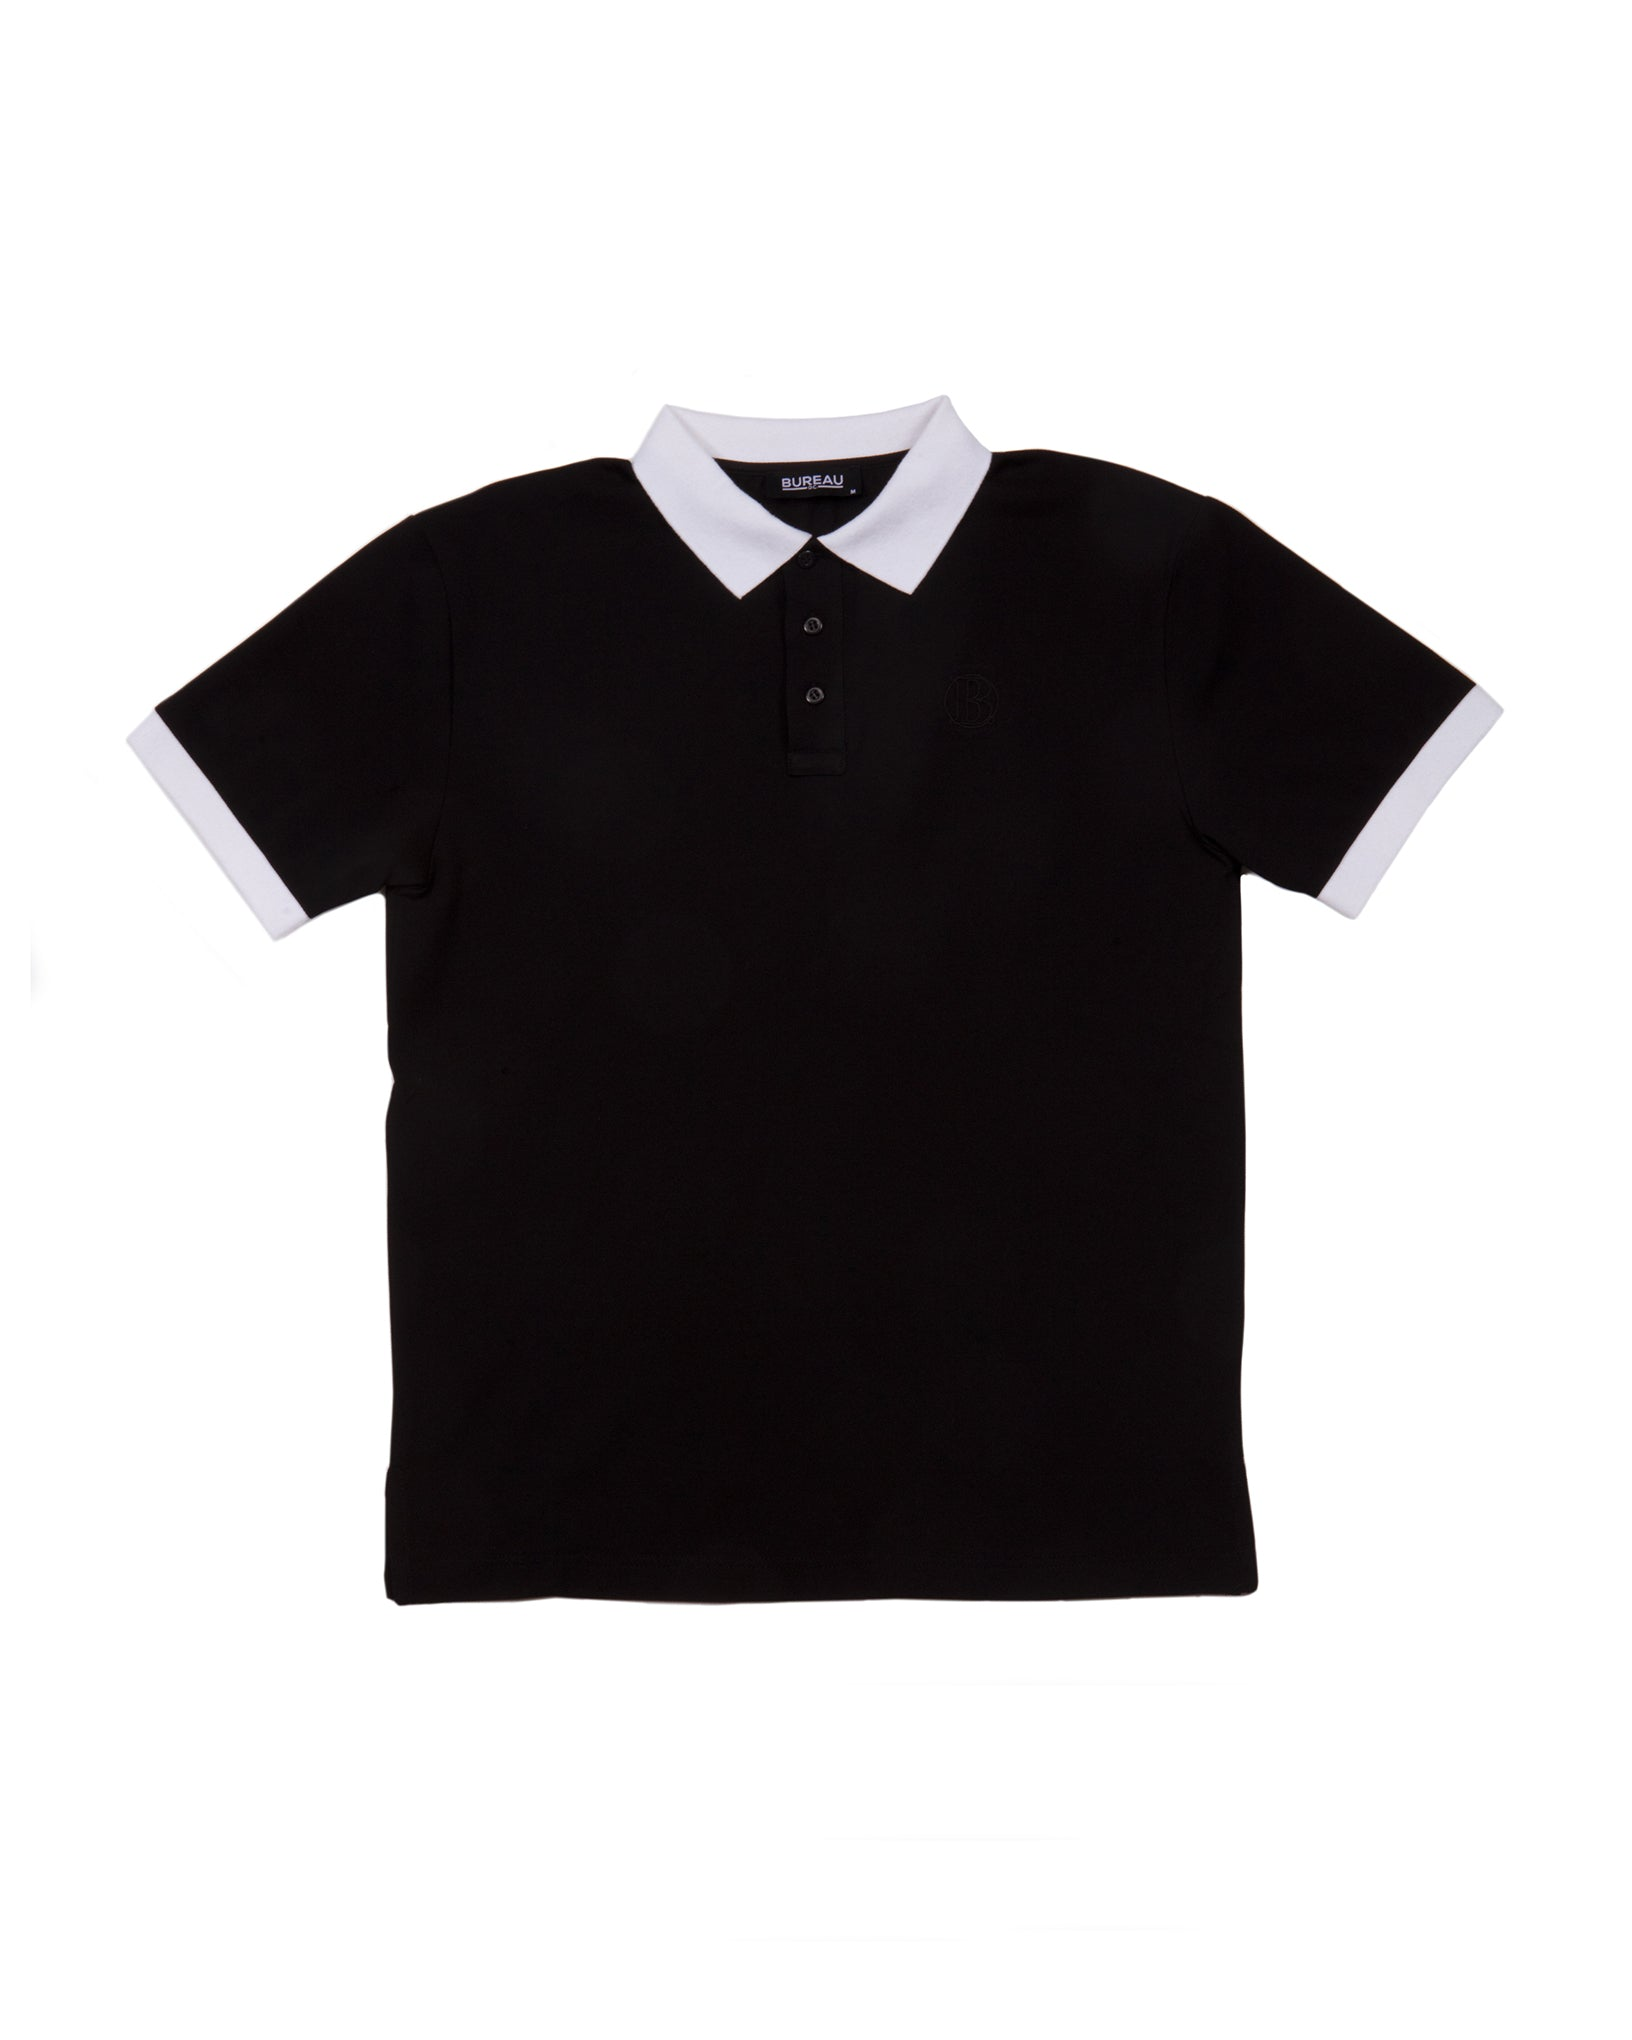 Two-Tone Short Sleeve Polo